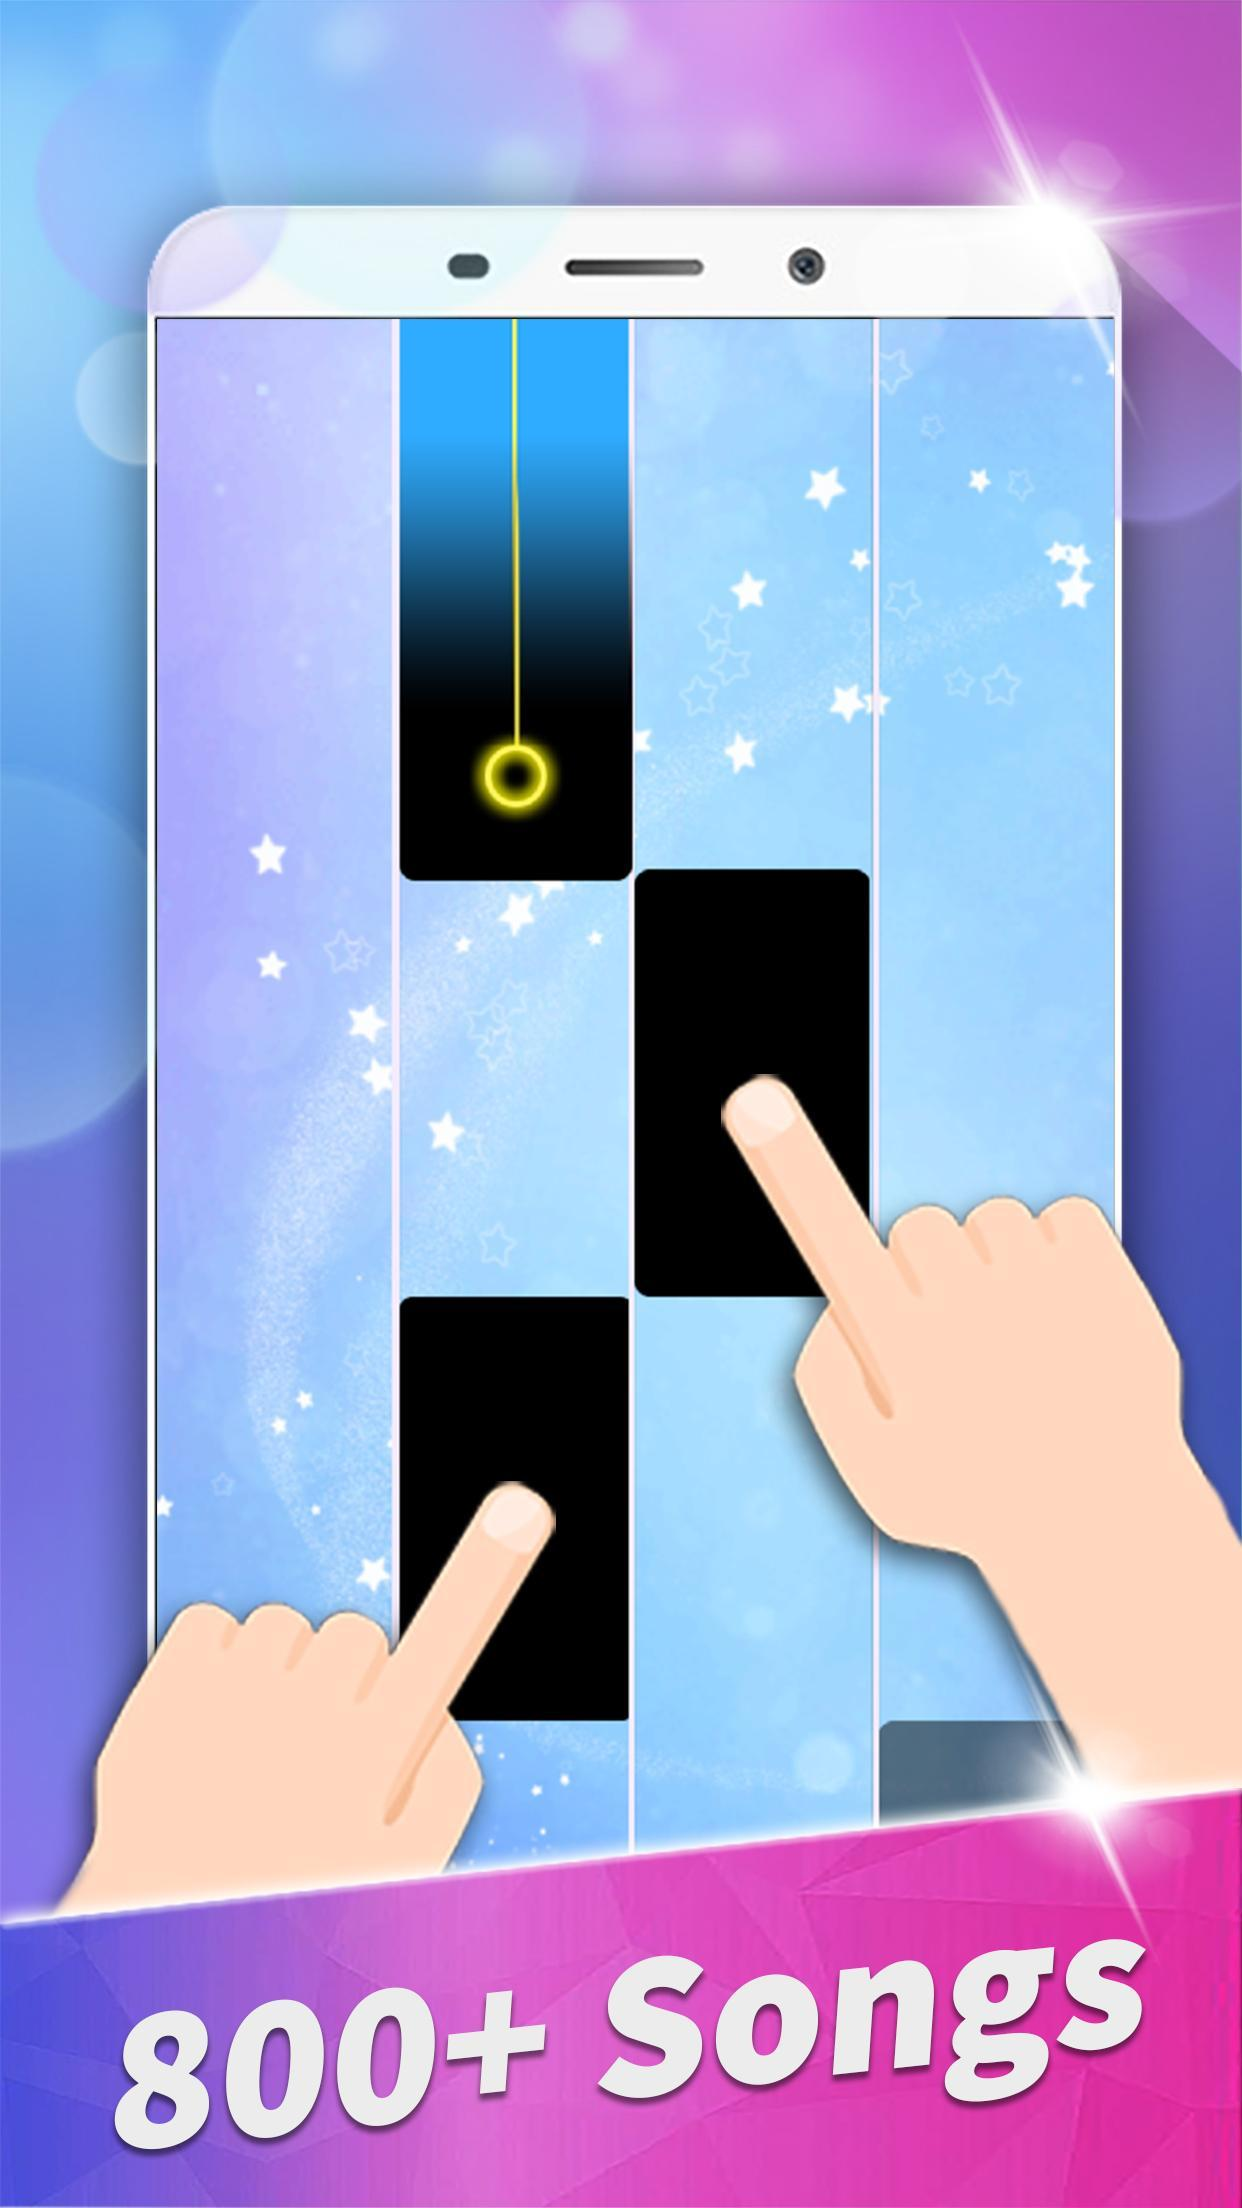 Magic piano 2. 8. 3 download for android apk free.